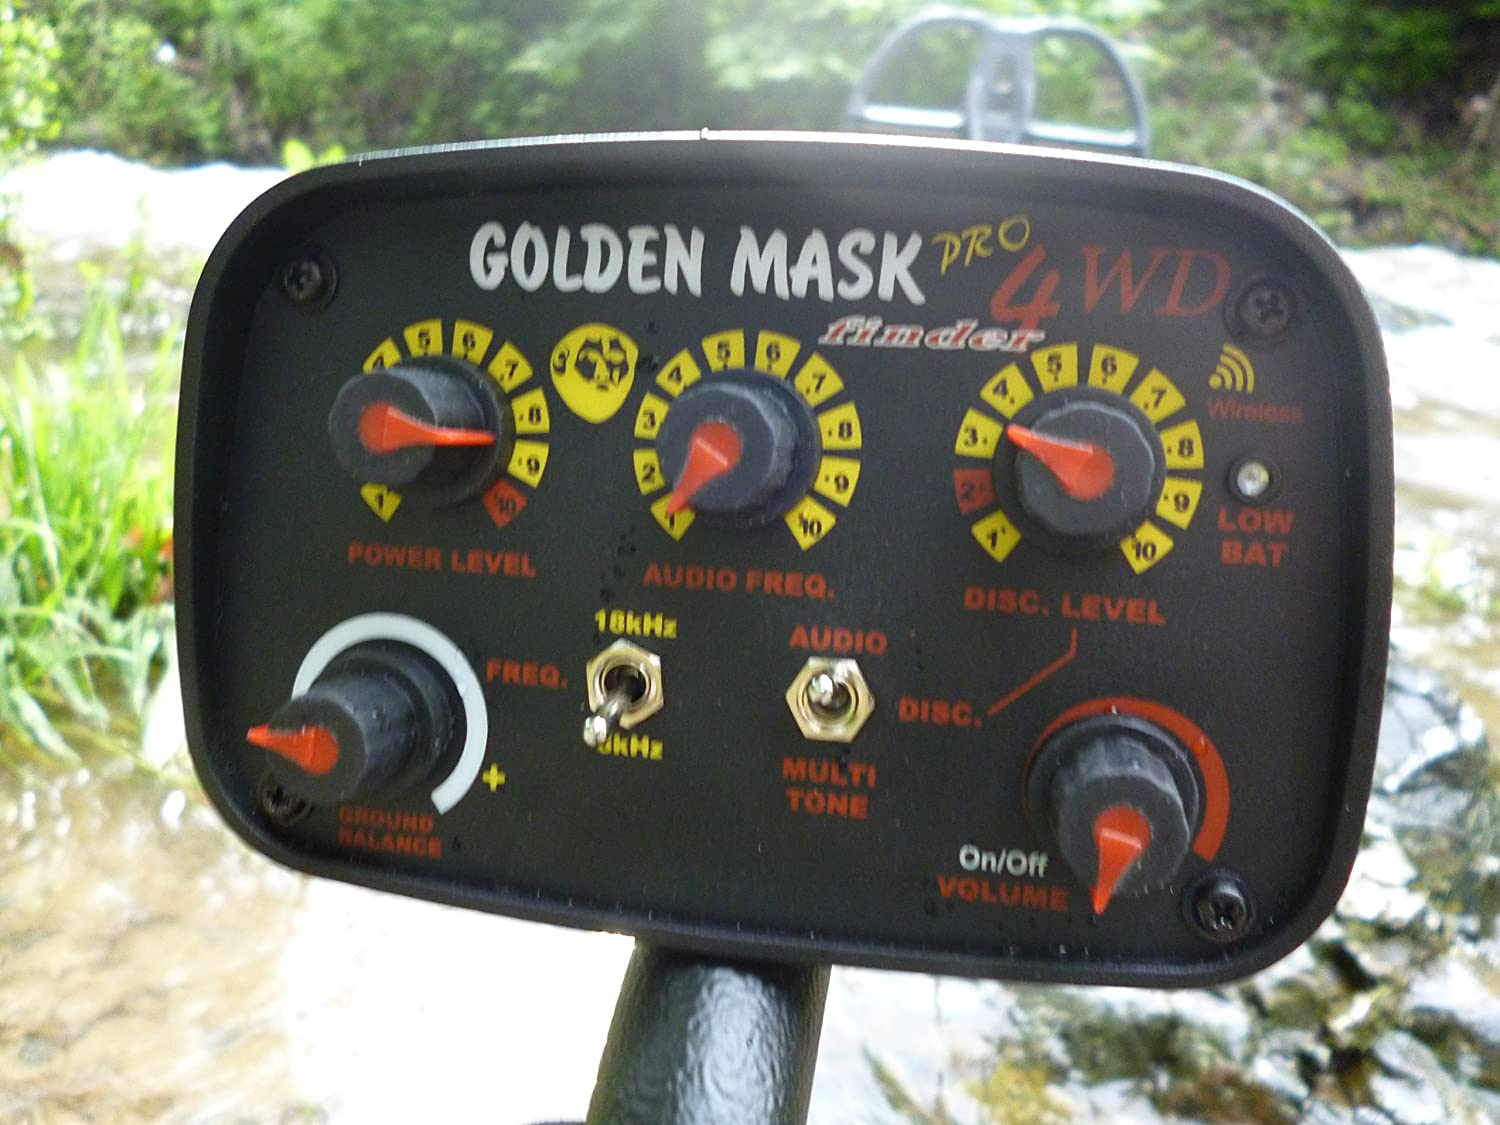 Amazon.com : Golden Mask 4wd Dual Freq 8-18khz with Wireless Headphones : Costume Masks : Garden & Outdoor